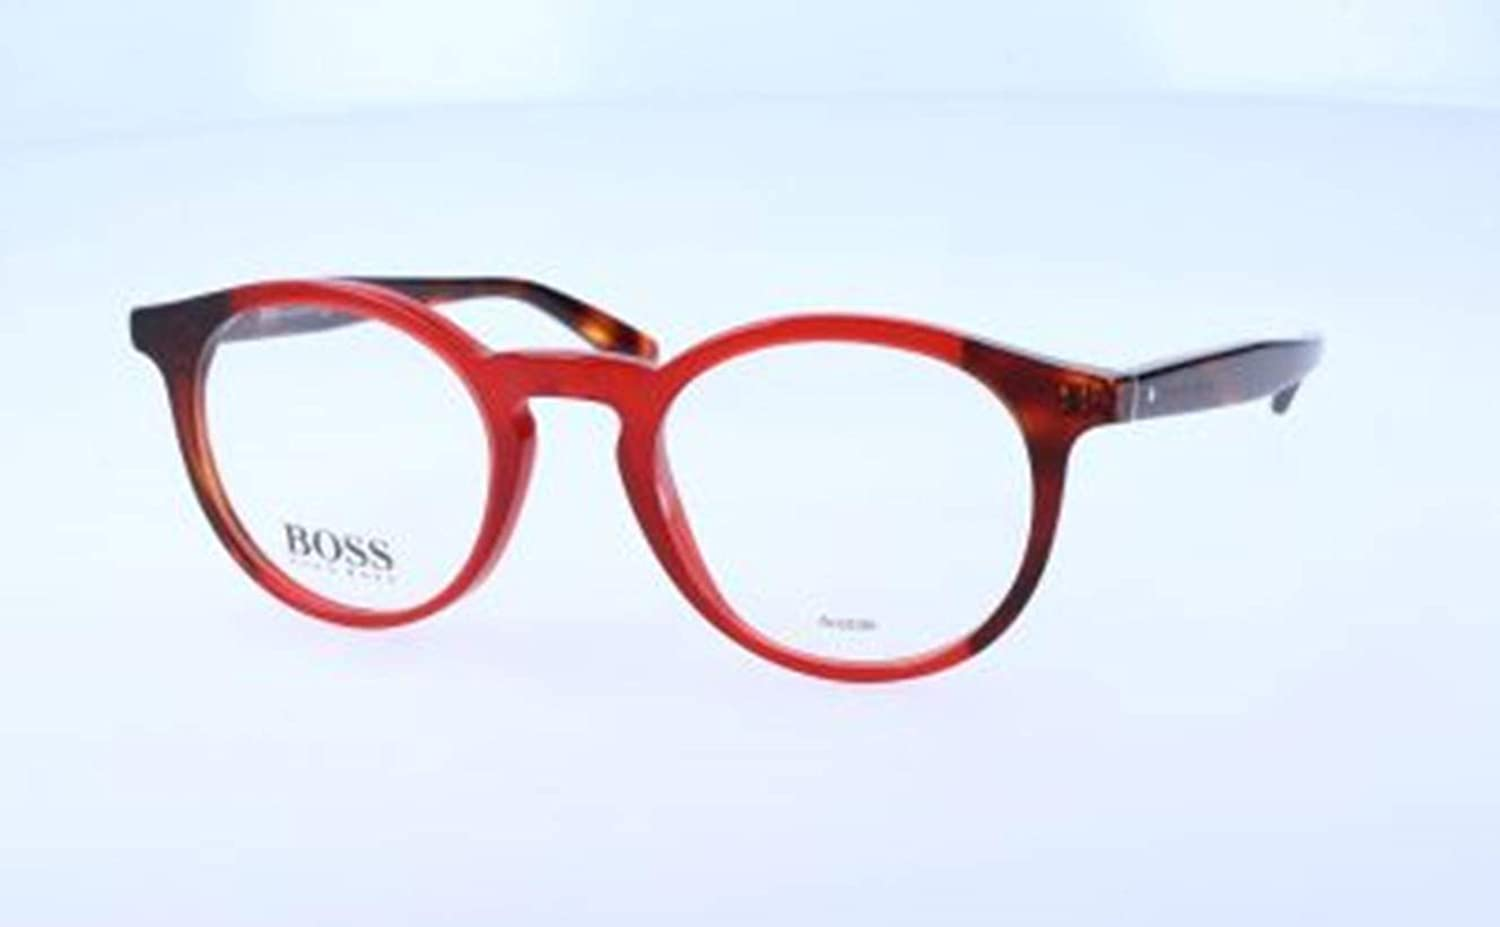 Hugo Boss Women's Hugo orange Brille Optical Frames, Multicolour (Mehrfarbig), 48.0